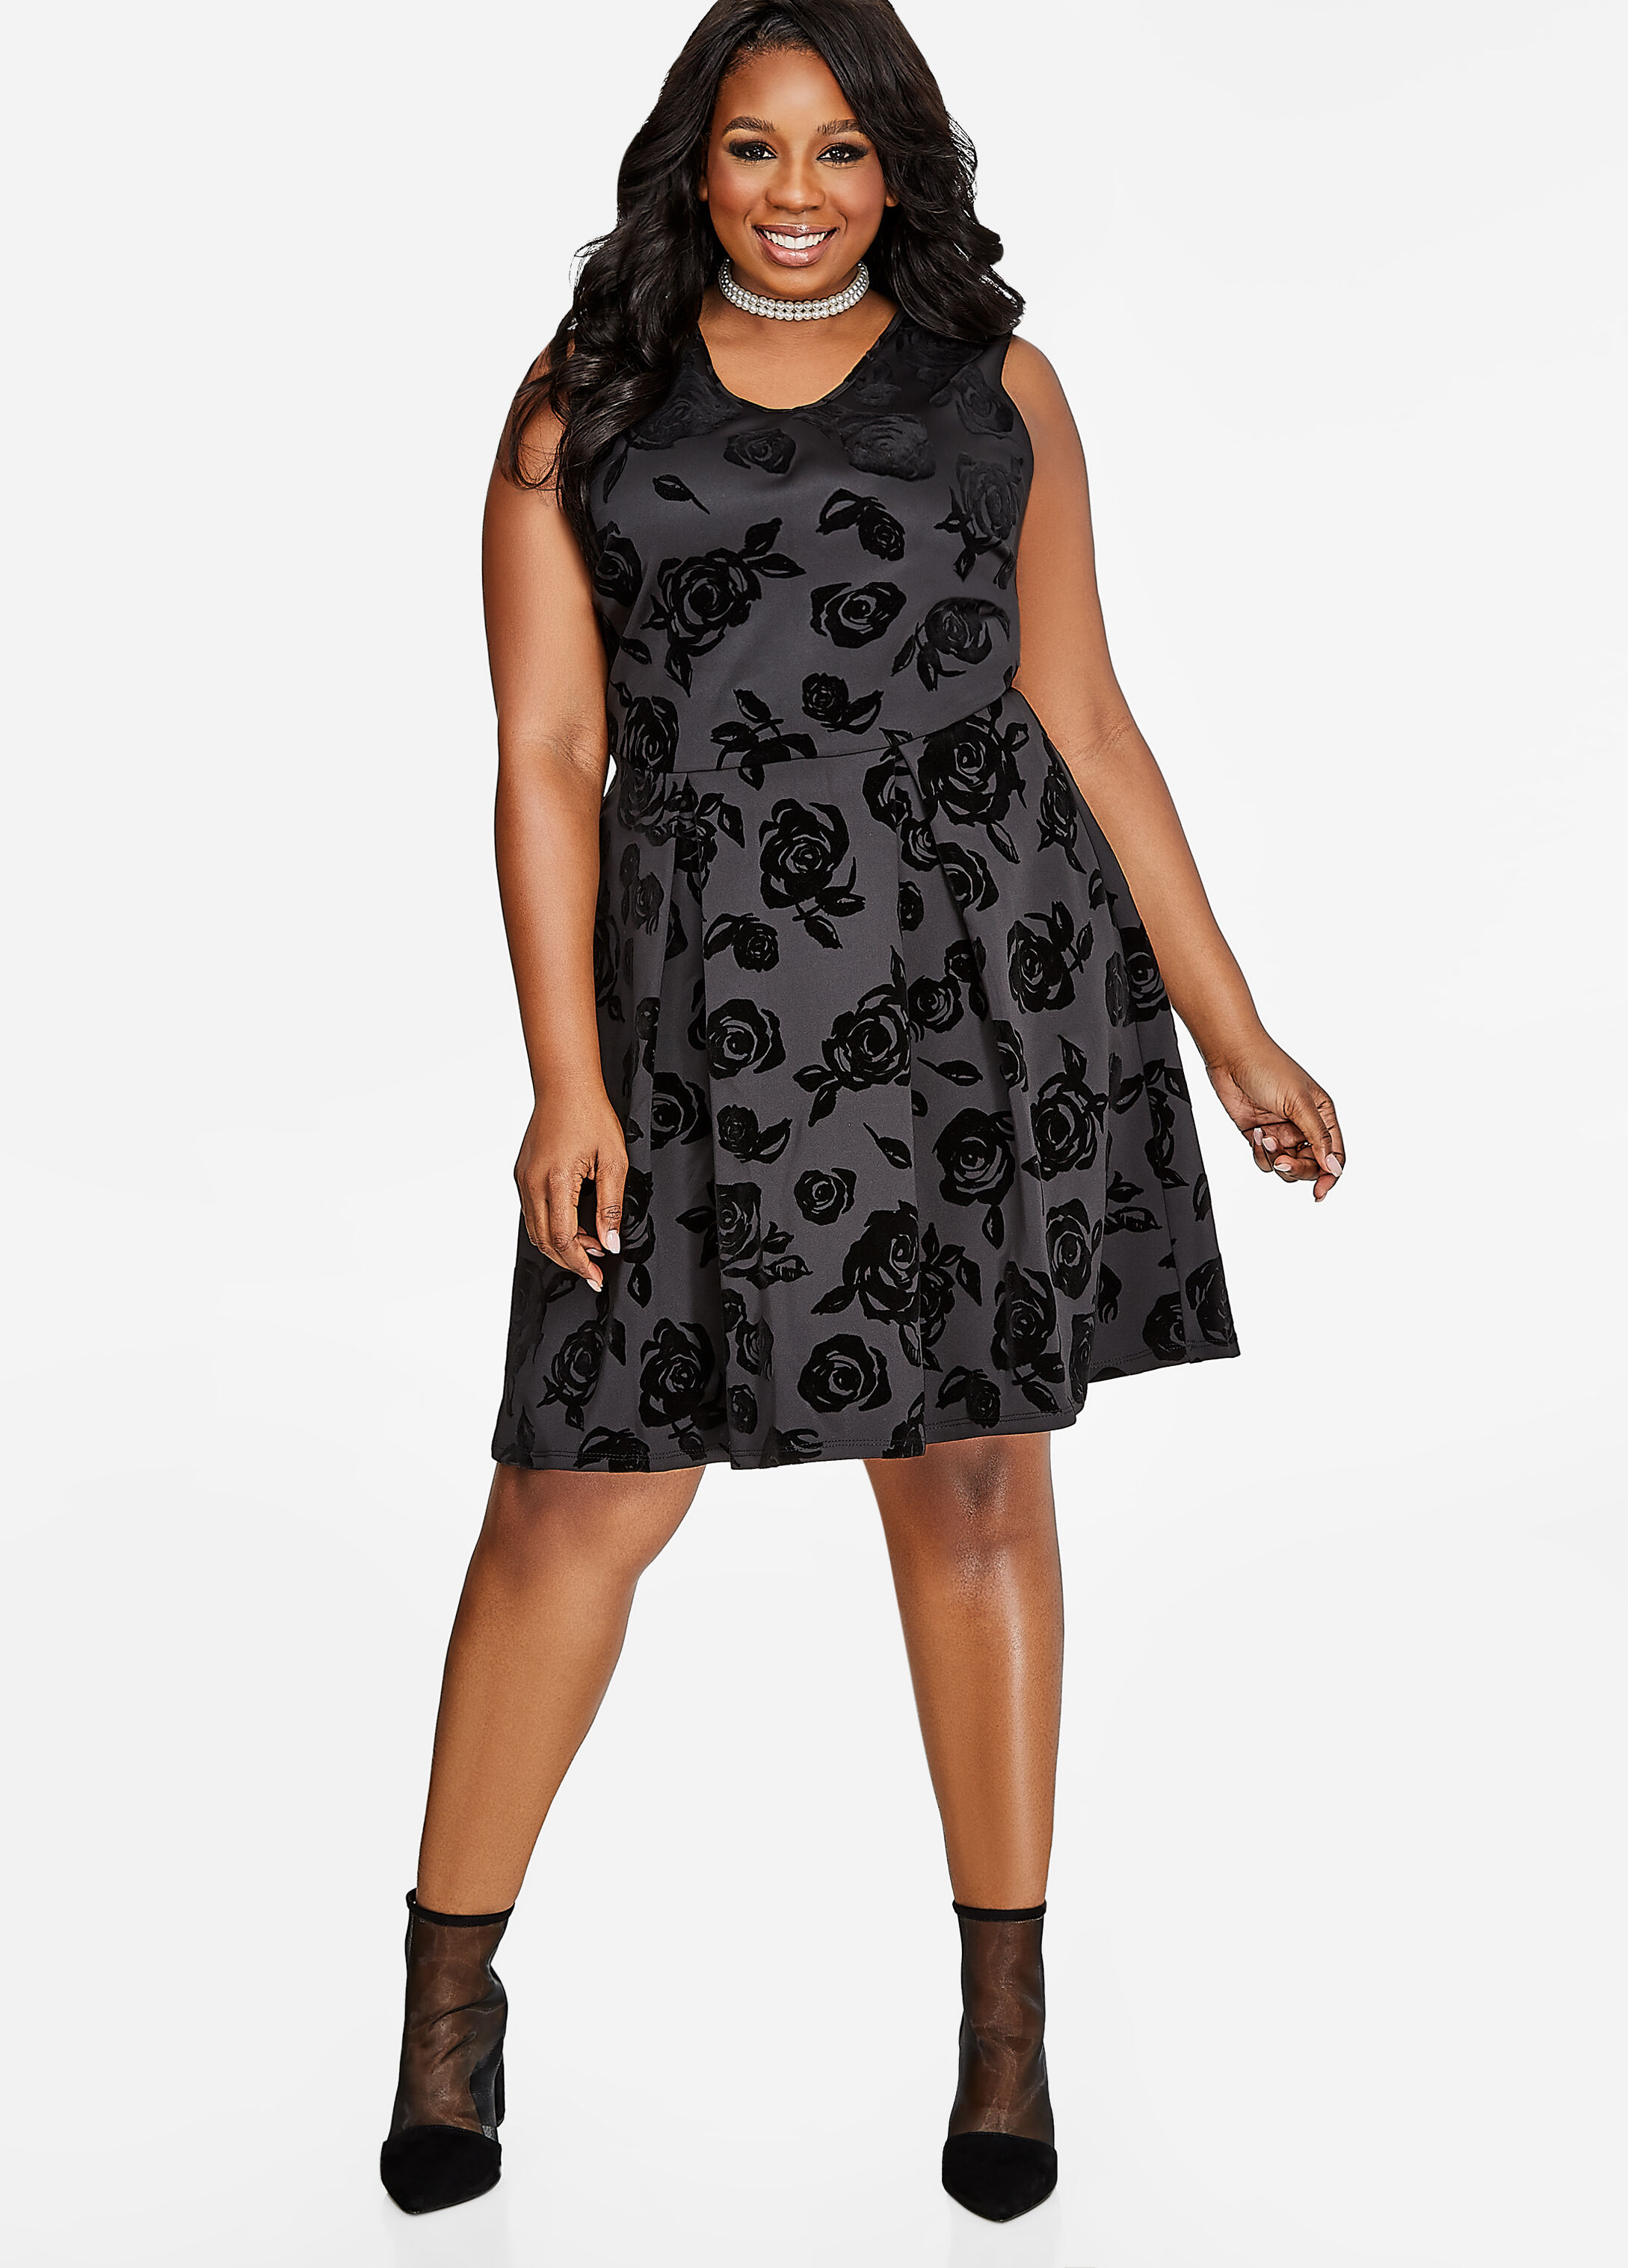 clearance womens plus-size clothing on sale | ashley stewart